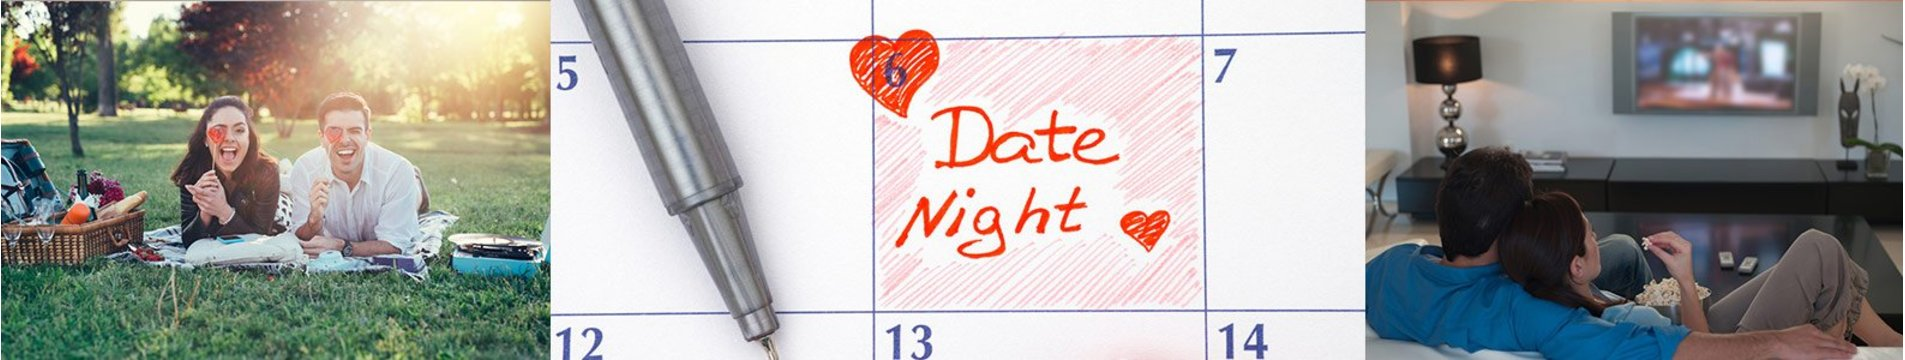 10-cheap-date-ideas-thumb.jpg